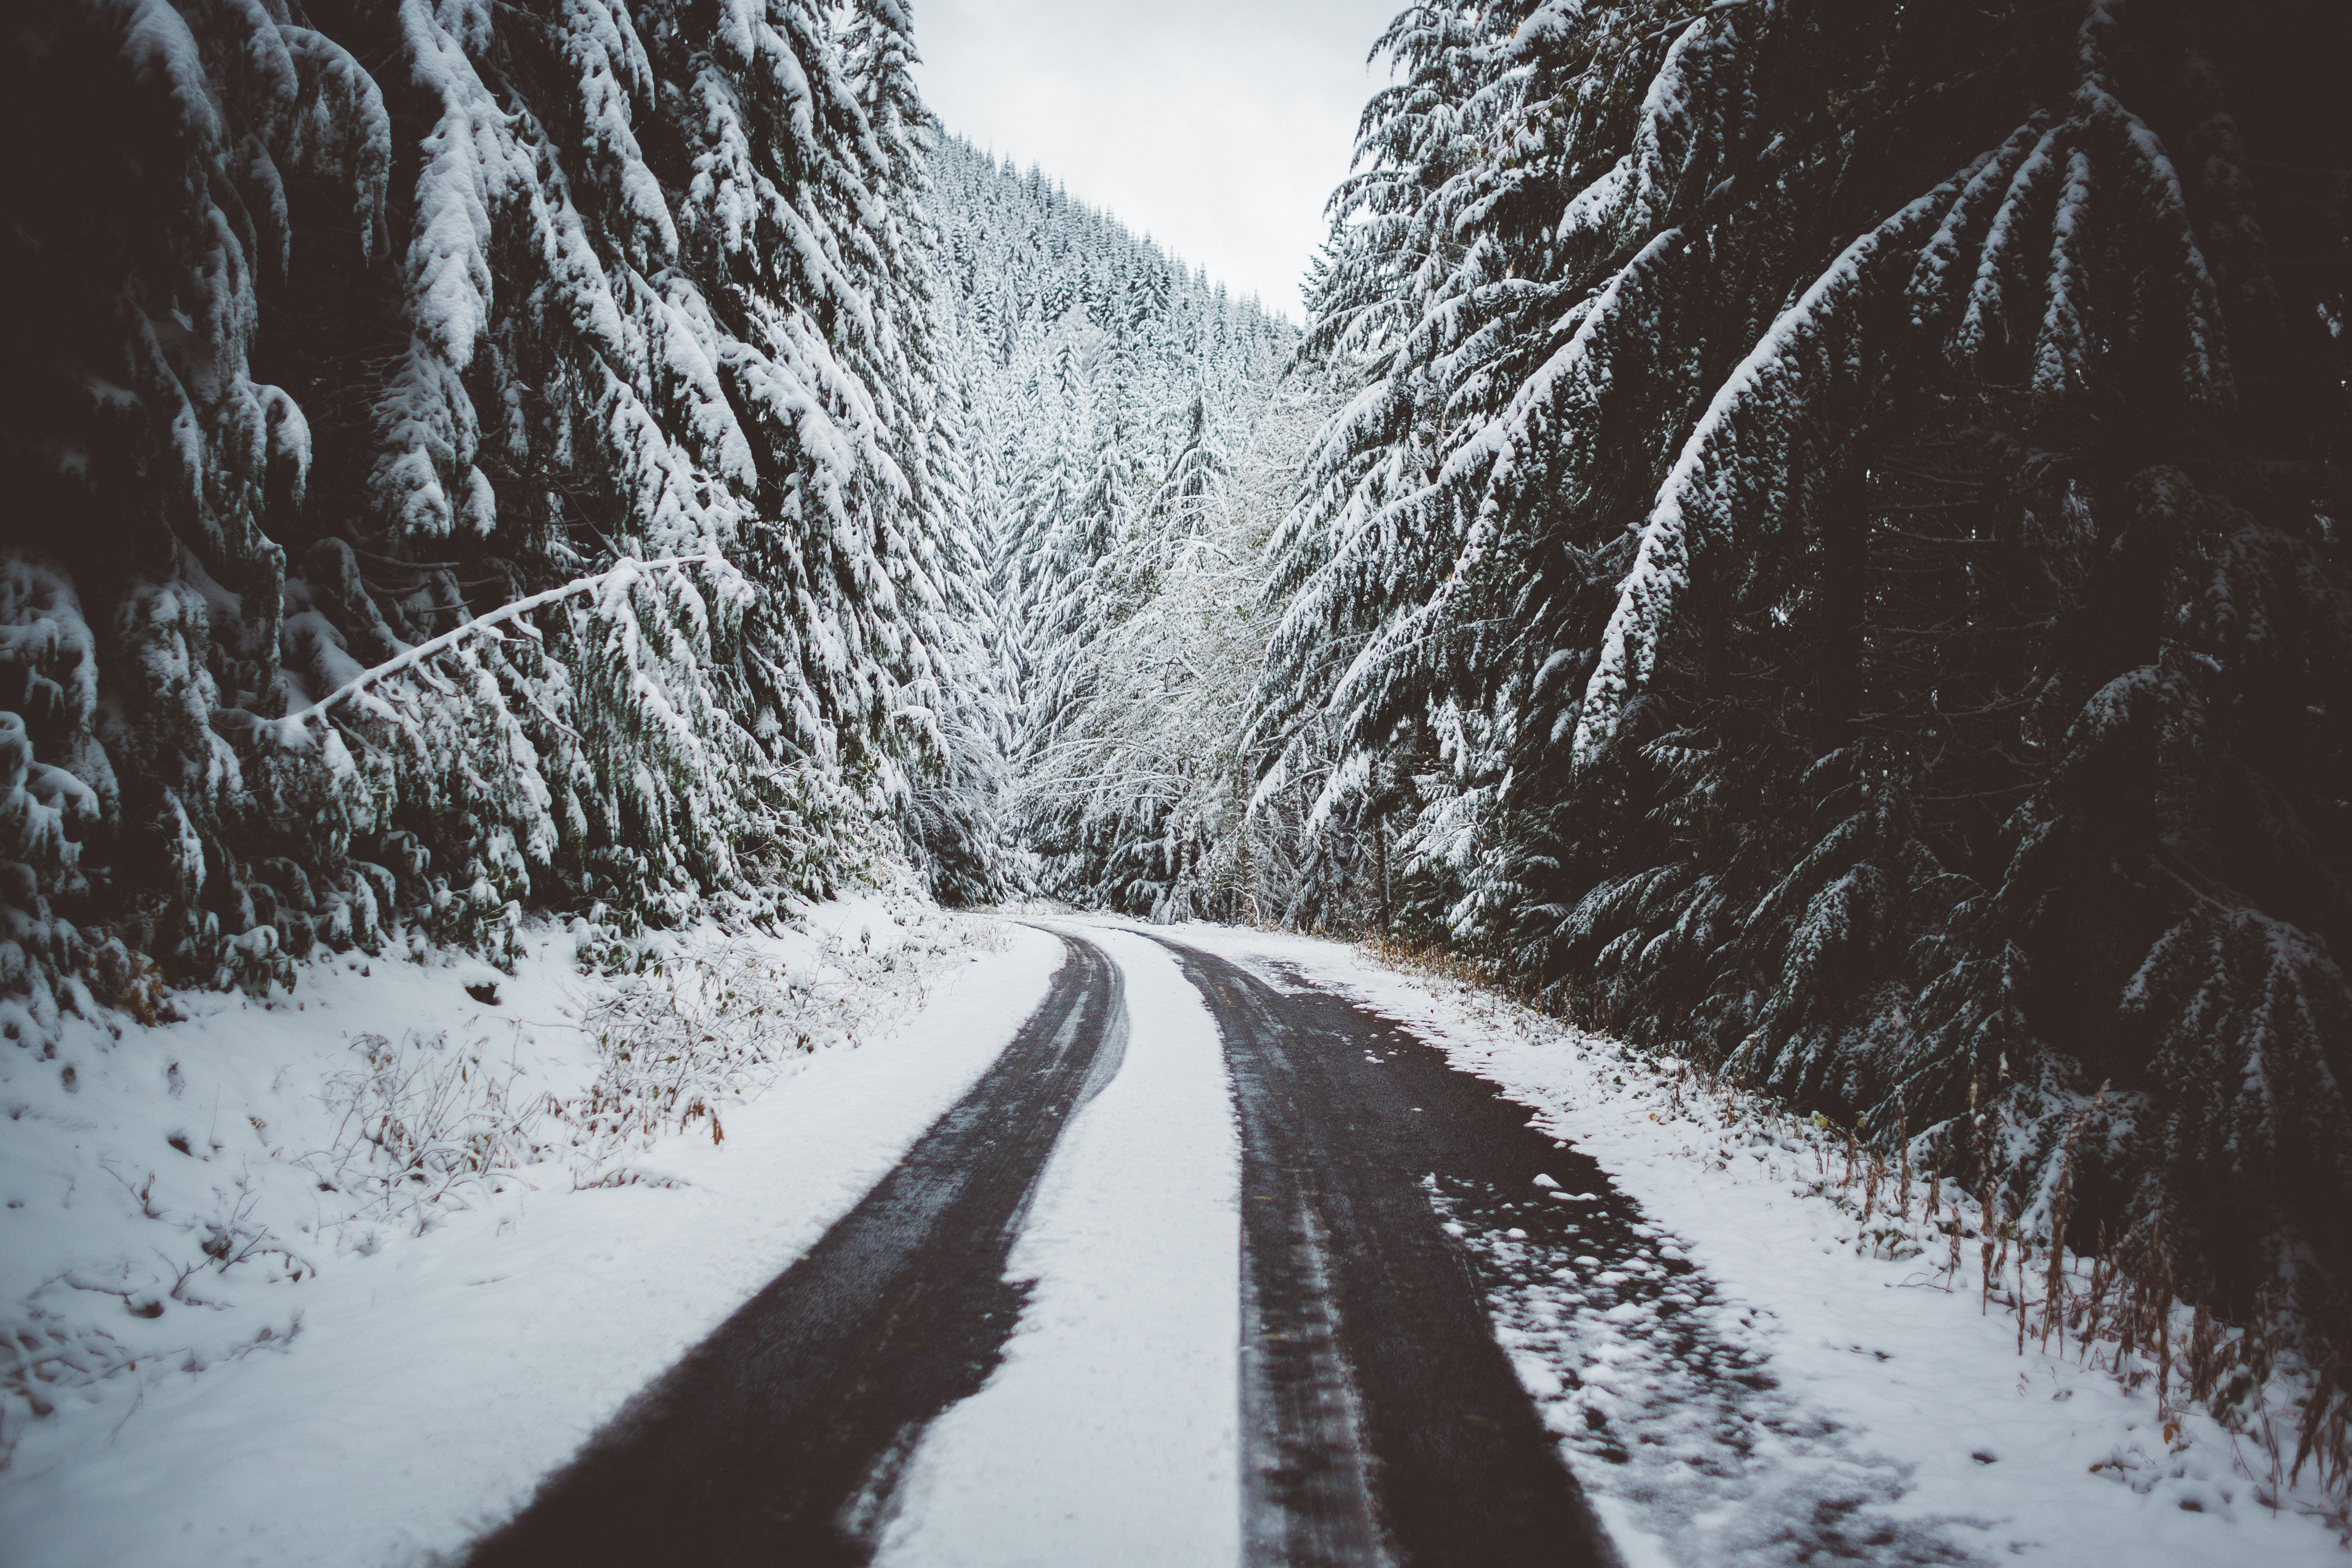 Image: Winter, forest, road, footprints, snow, landscape, nature, trees